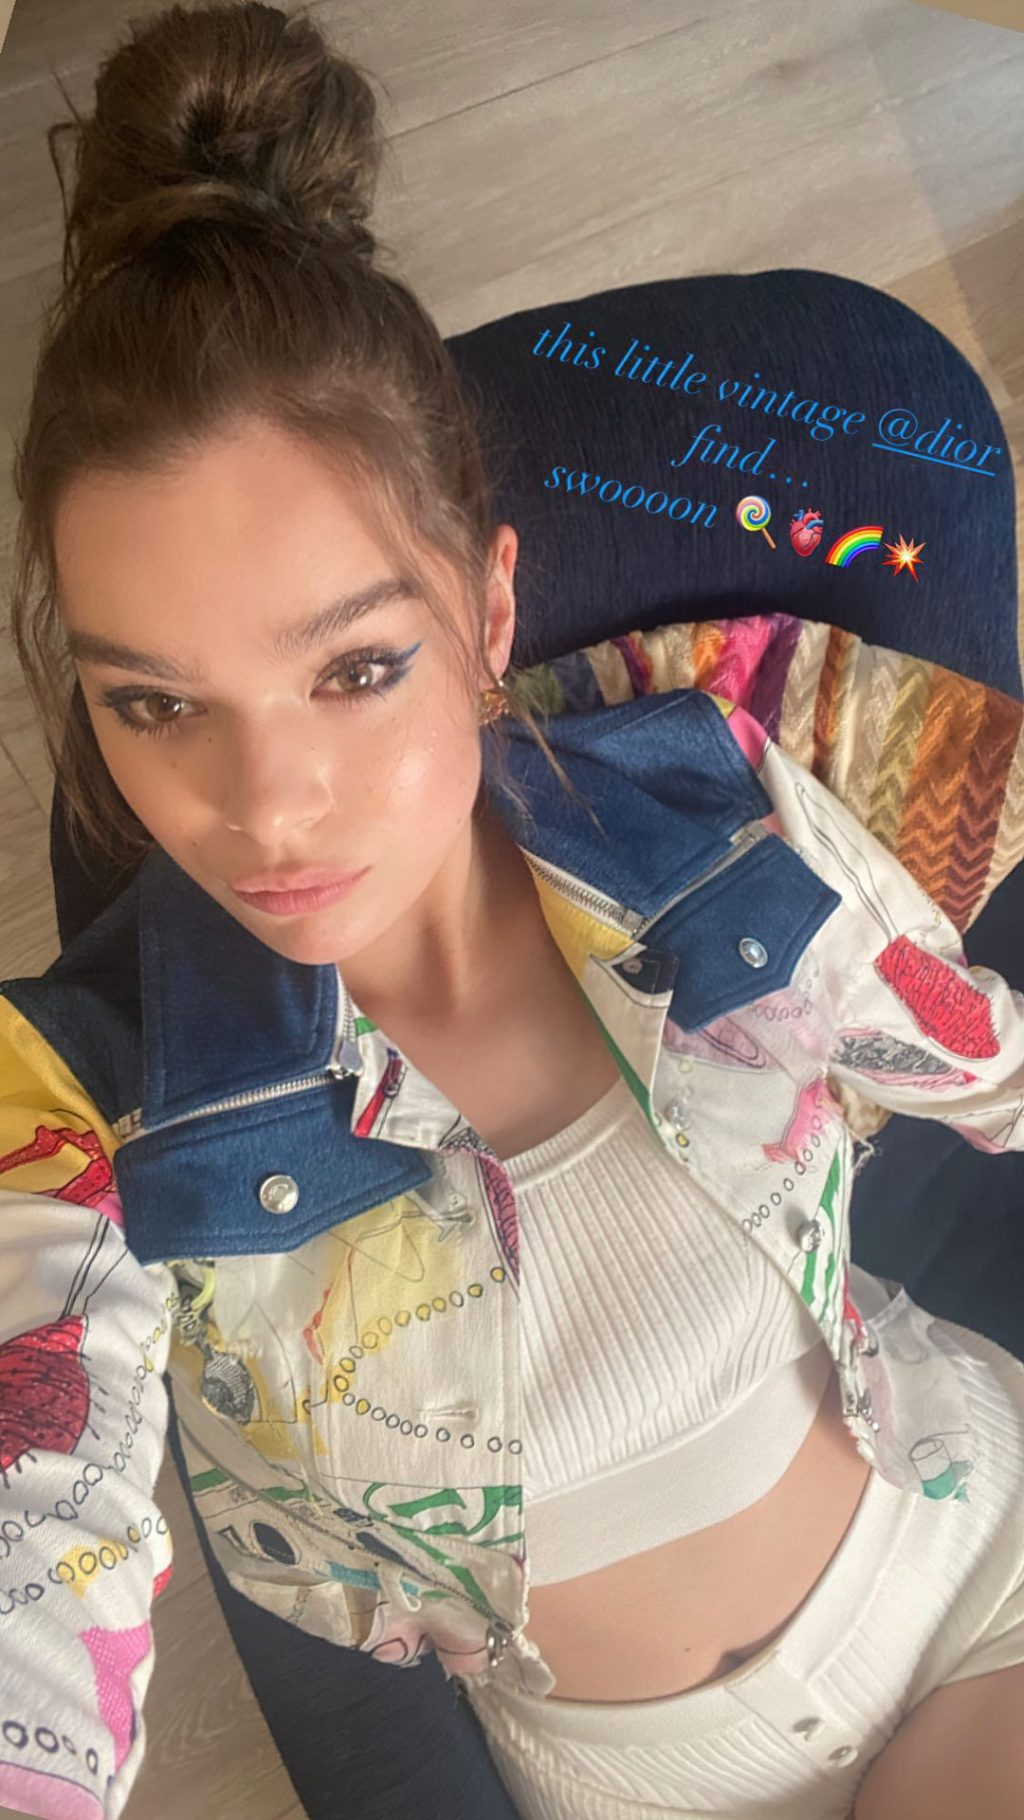 Hailee Steinfeld Nude & Sexy Collection (34 Photos + Video) [Updated 09/19/21]